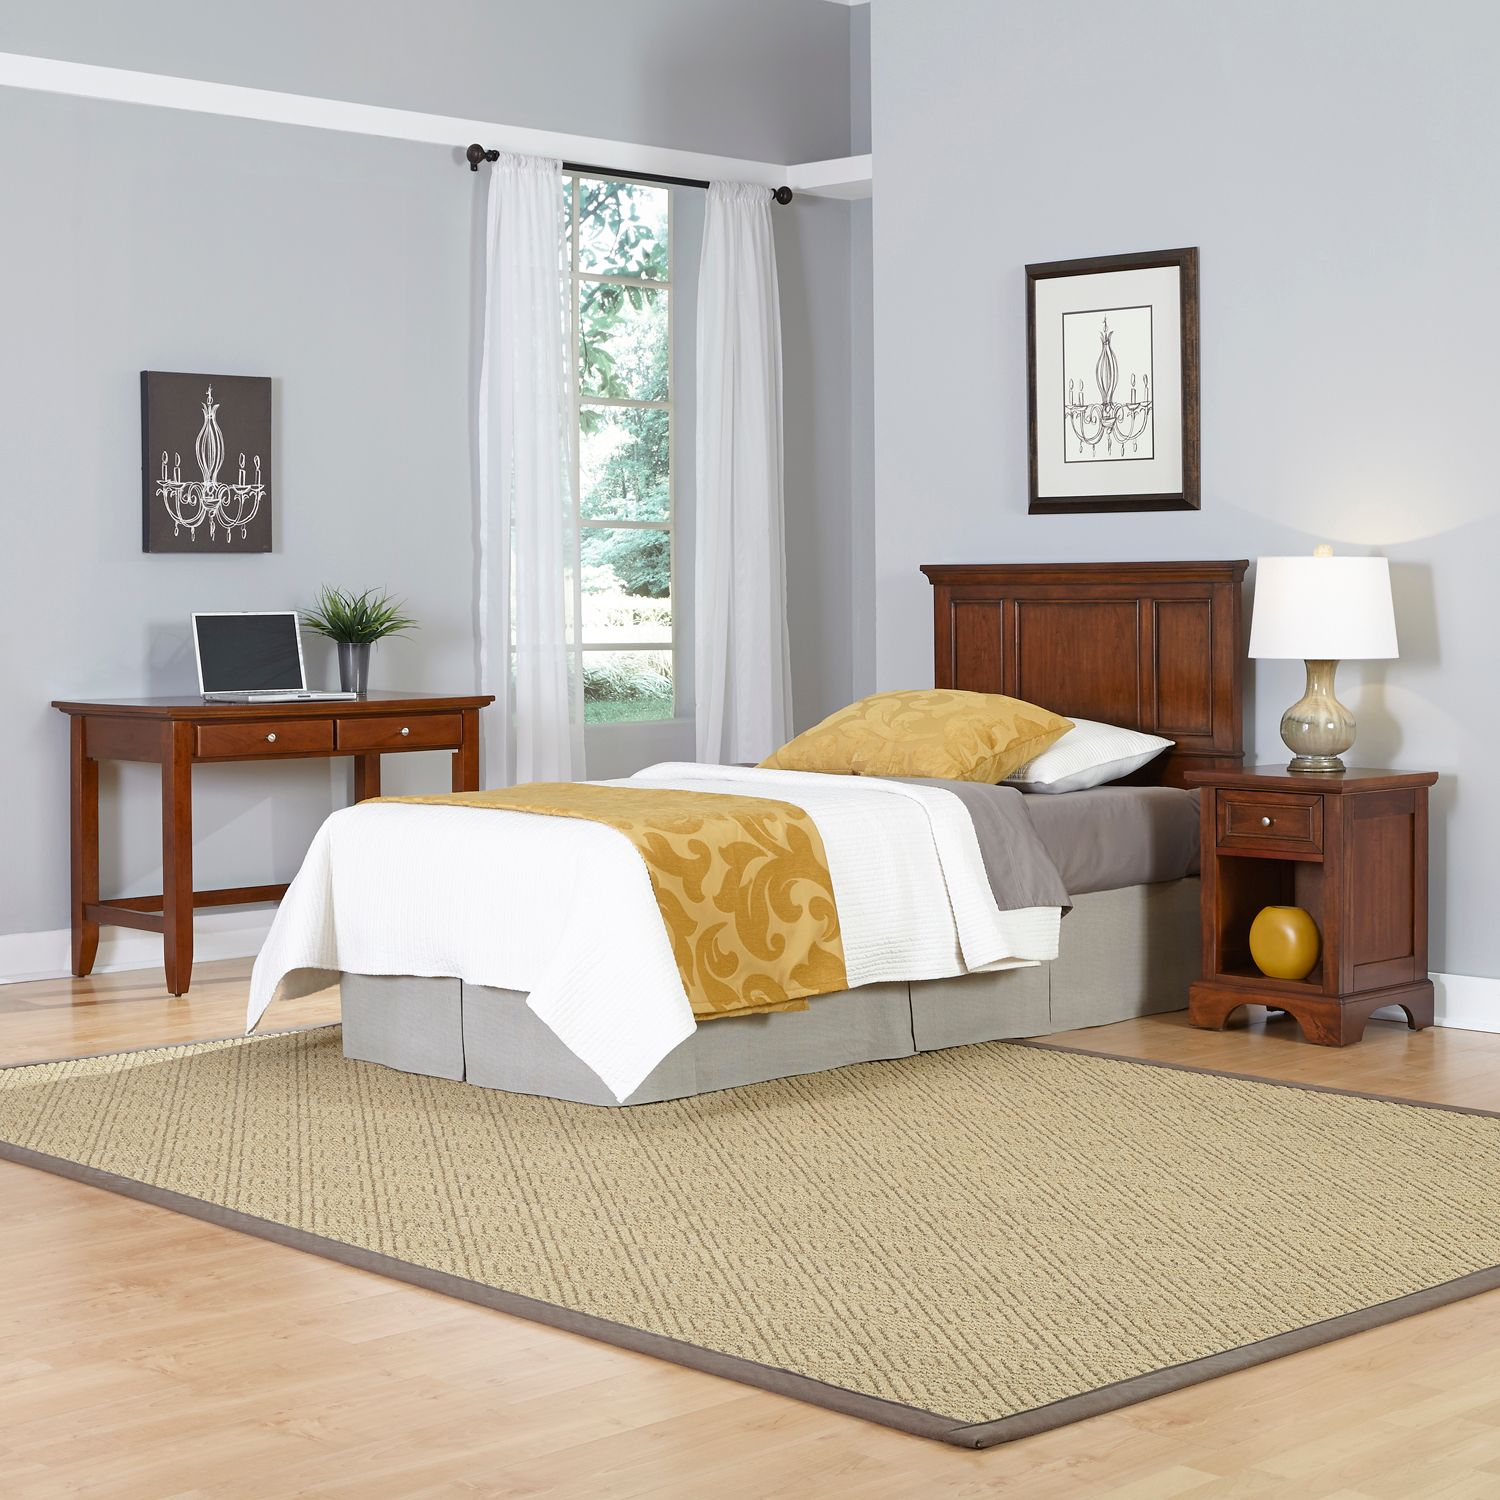 Popular Home Styles piece Chesapeake Twin Bedroom Set